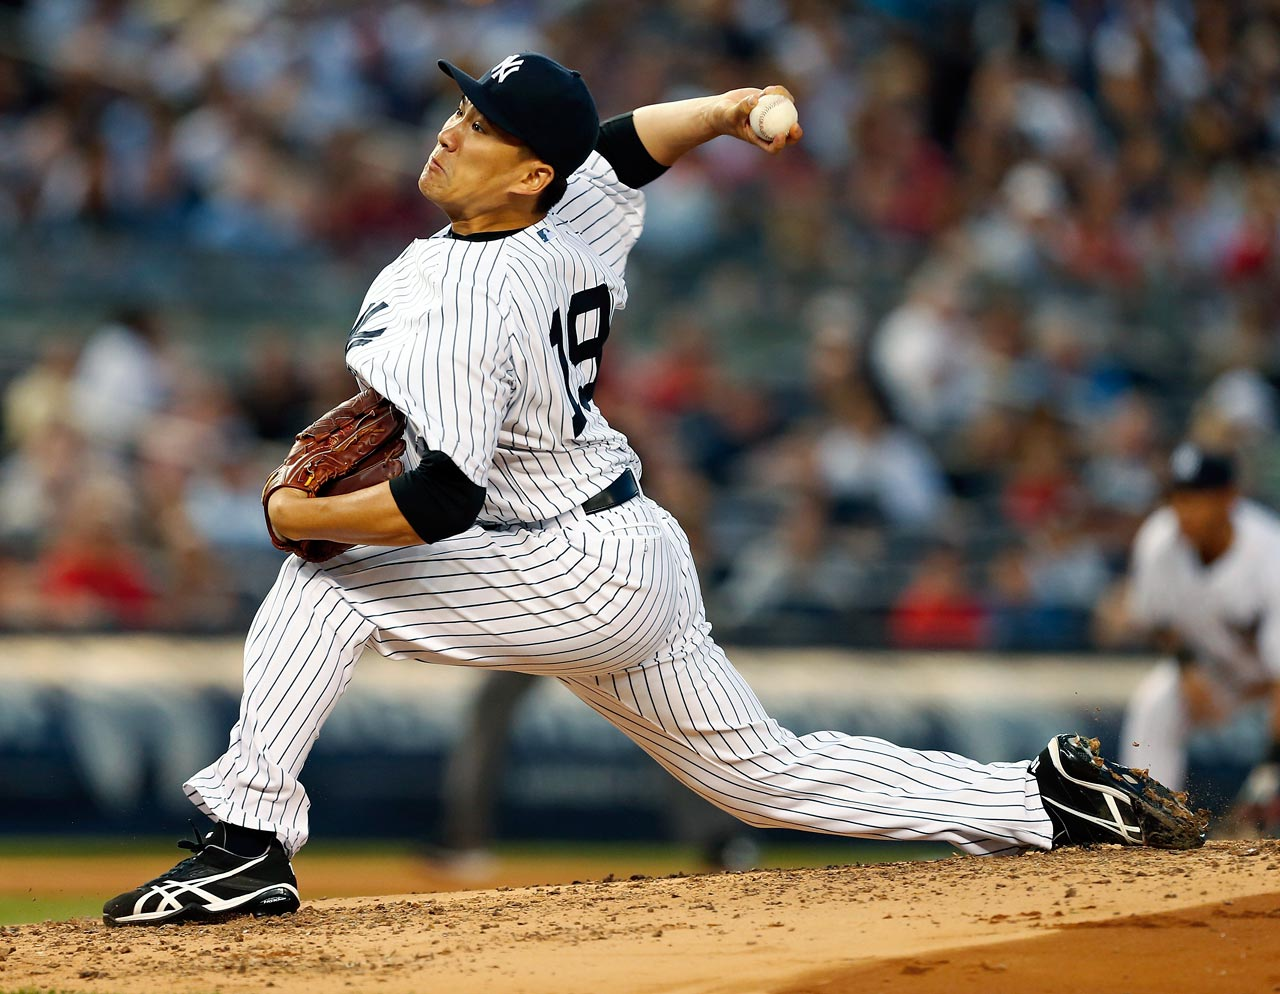 The Yankees, Dodgers, Cubs, White Sox and Diamondbacks were all viewed as finalists for the 25-year-old Japanese ace, but it was the Yankees who came out on top, signing Tanaka to a seven-year, $155 million deal. He was 24-0 with a 1.27 ERA in leading the Golden Eagles to the Japan Series title.